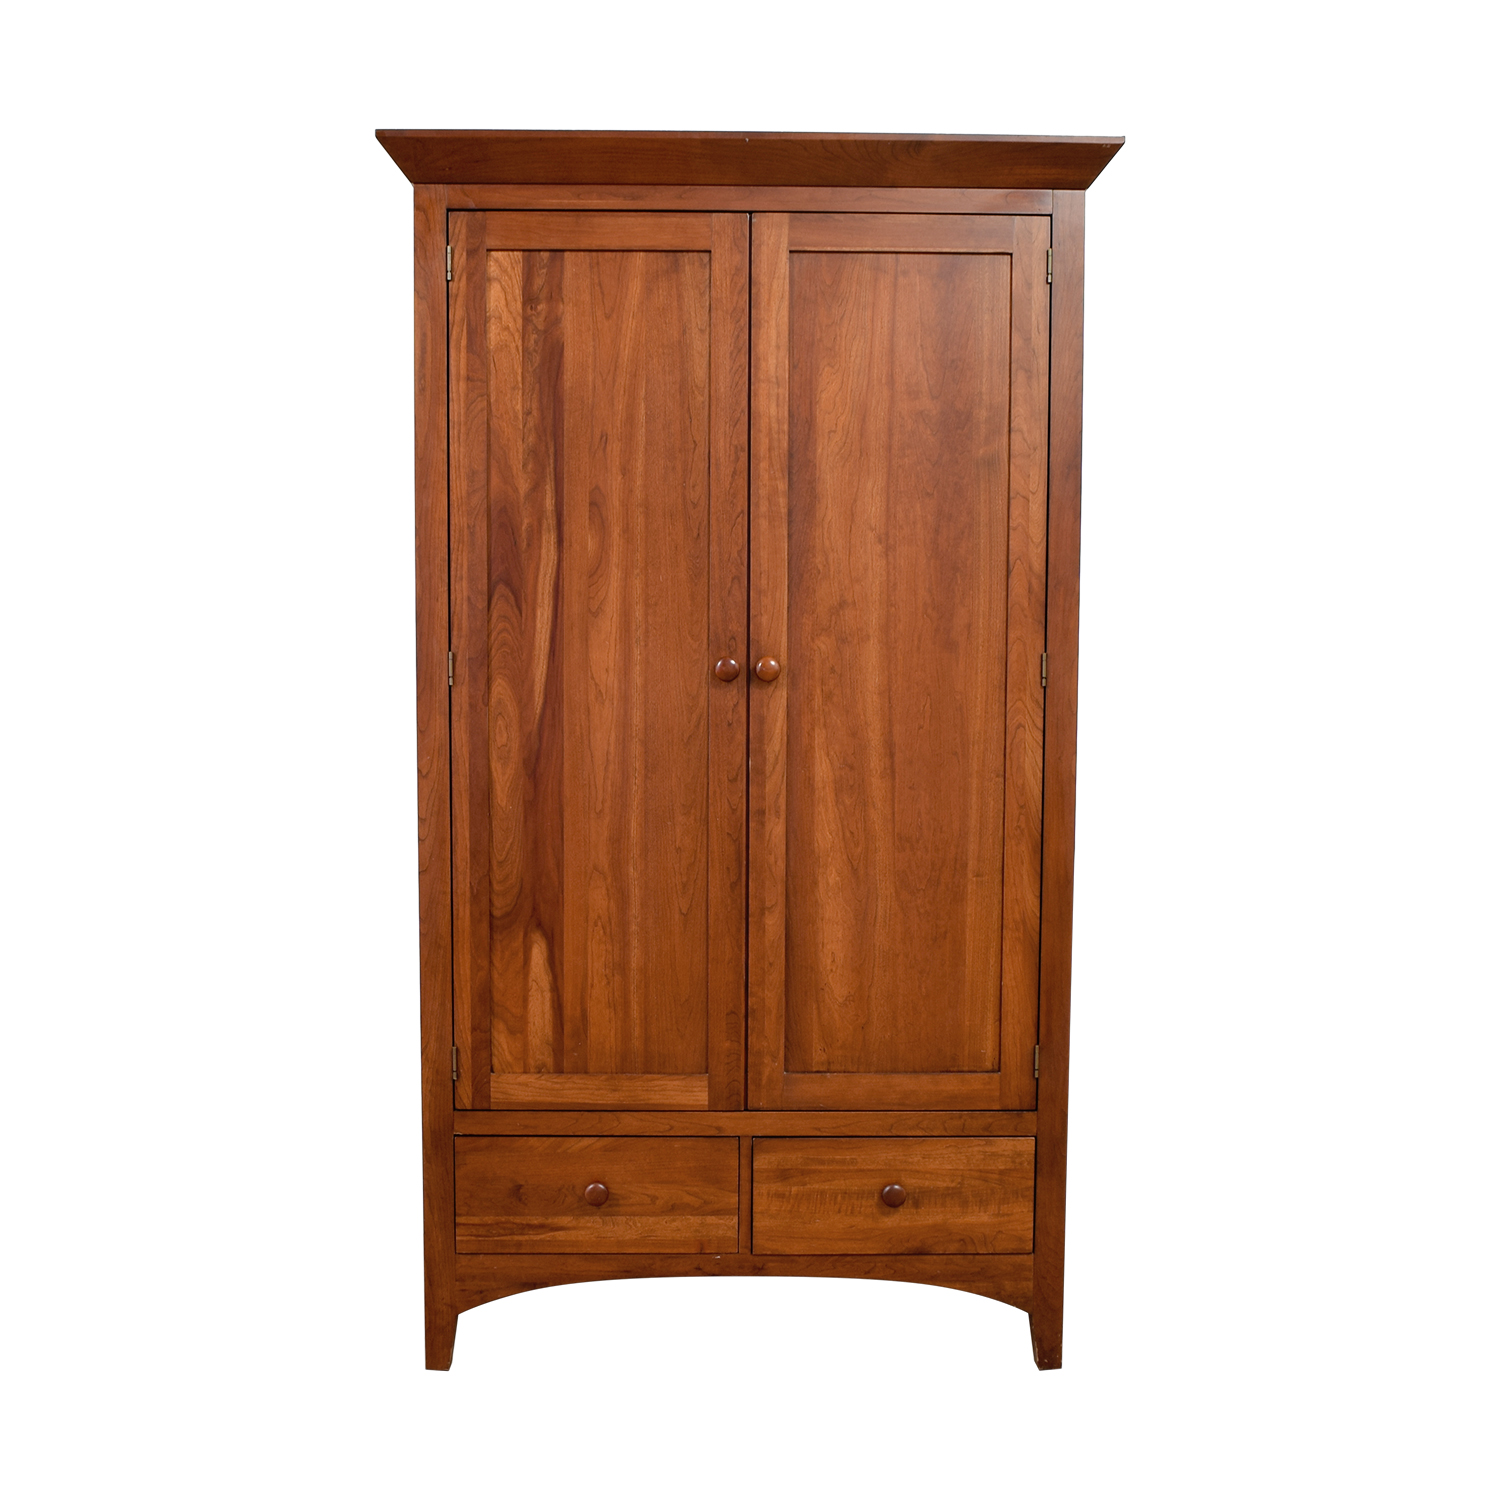 Ethan Allen Ethan Allen Wood Five-Drawer Armoire dimensions